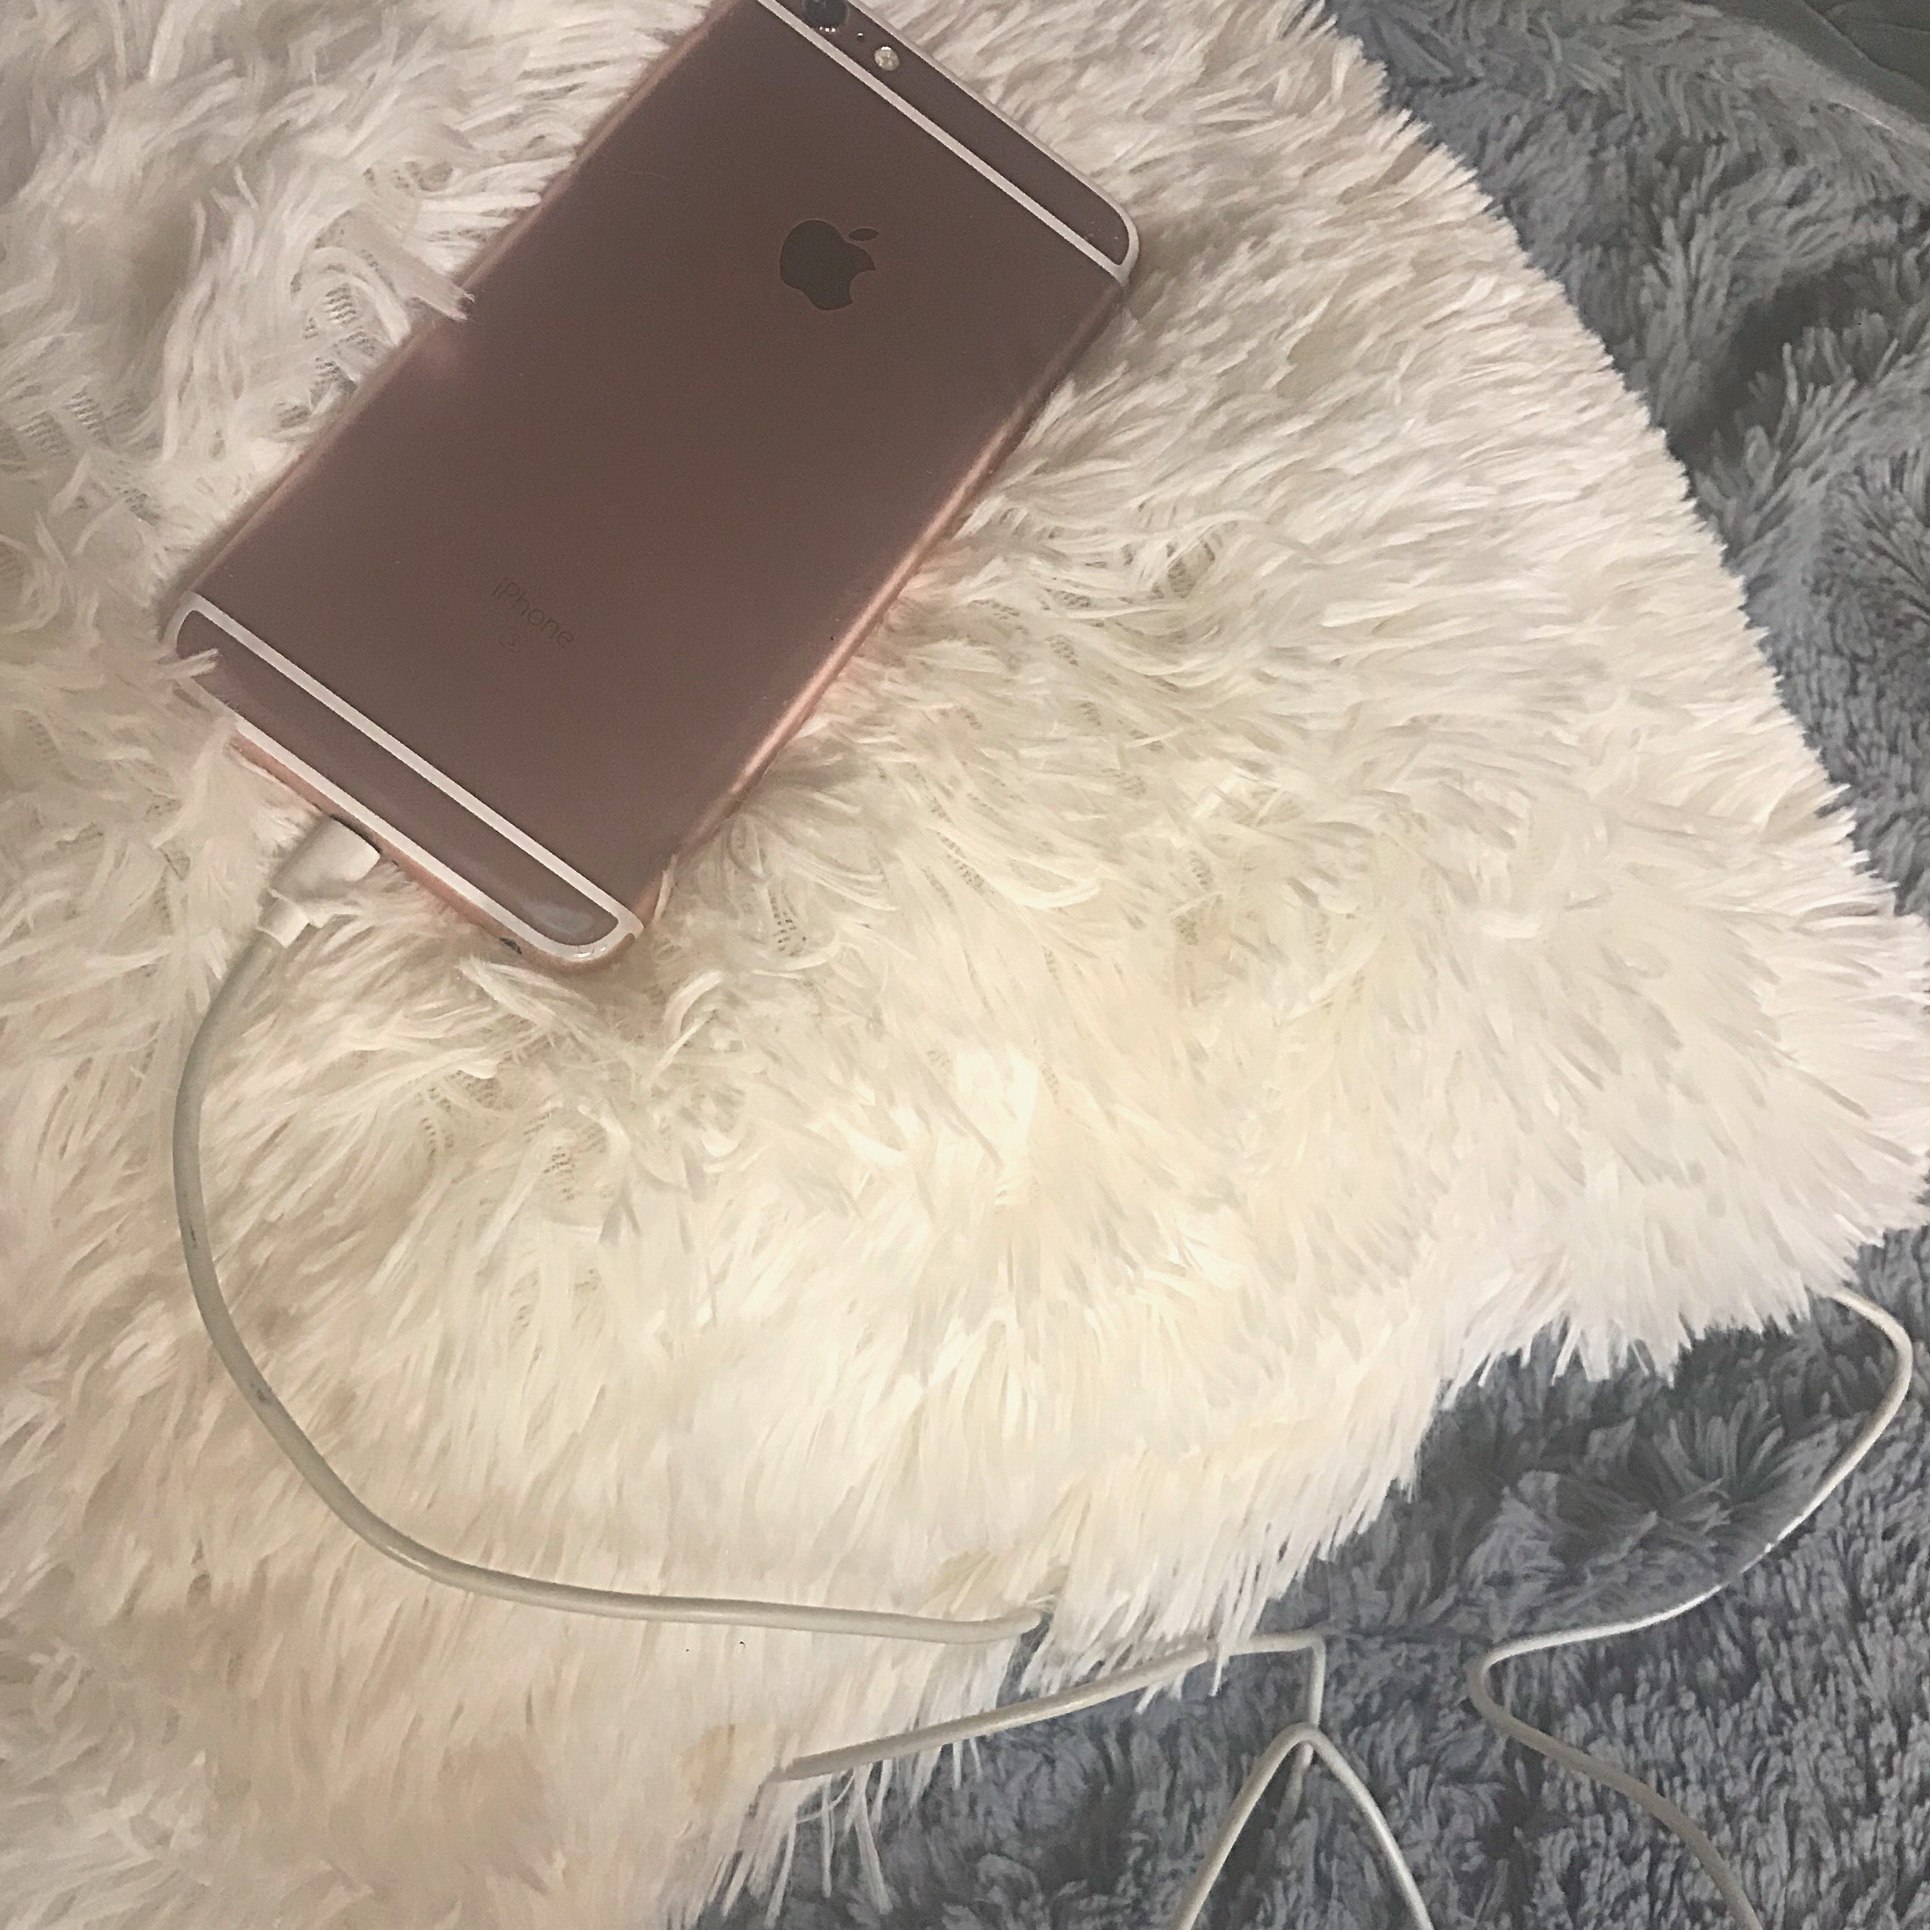 WARNING: Phone charger electrocutes 14 year old in bed.